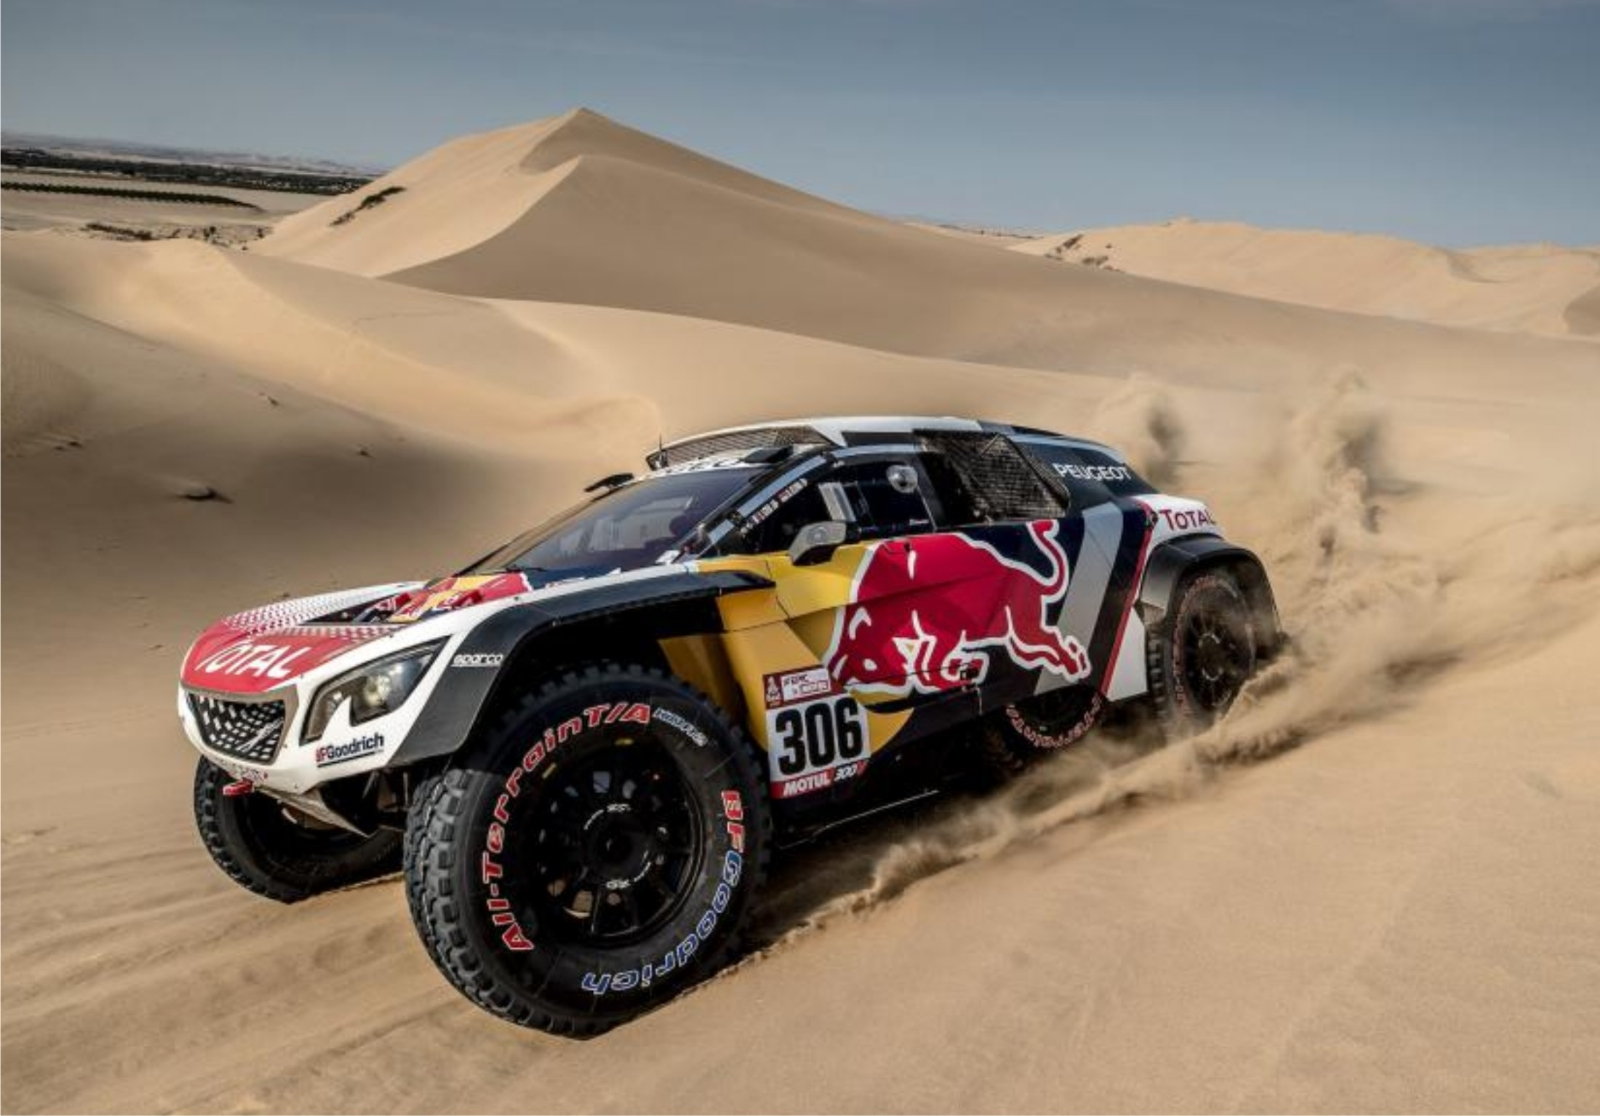 loeb correr el dakar 2019 con peugeot el esquiu. Black Bedroom Furniture Sets. Home Design Ideas